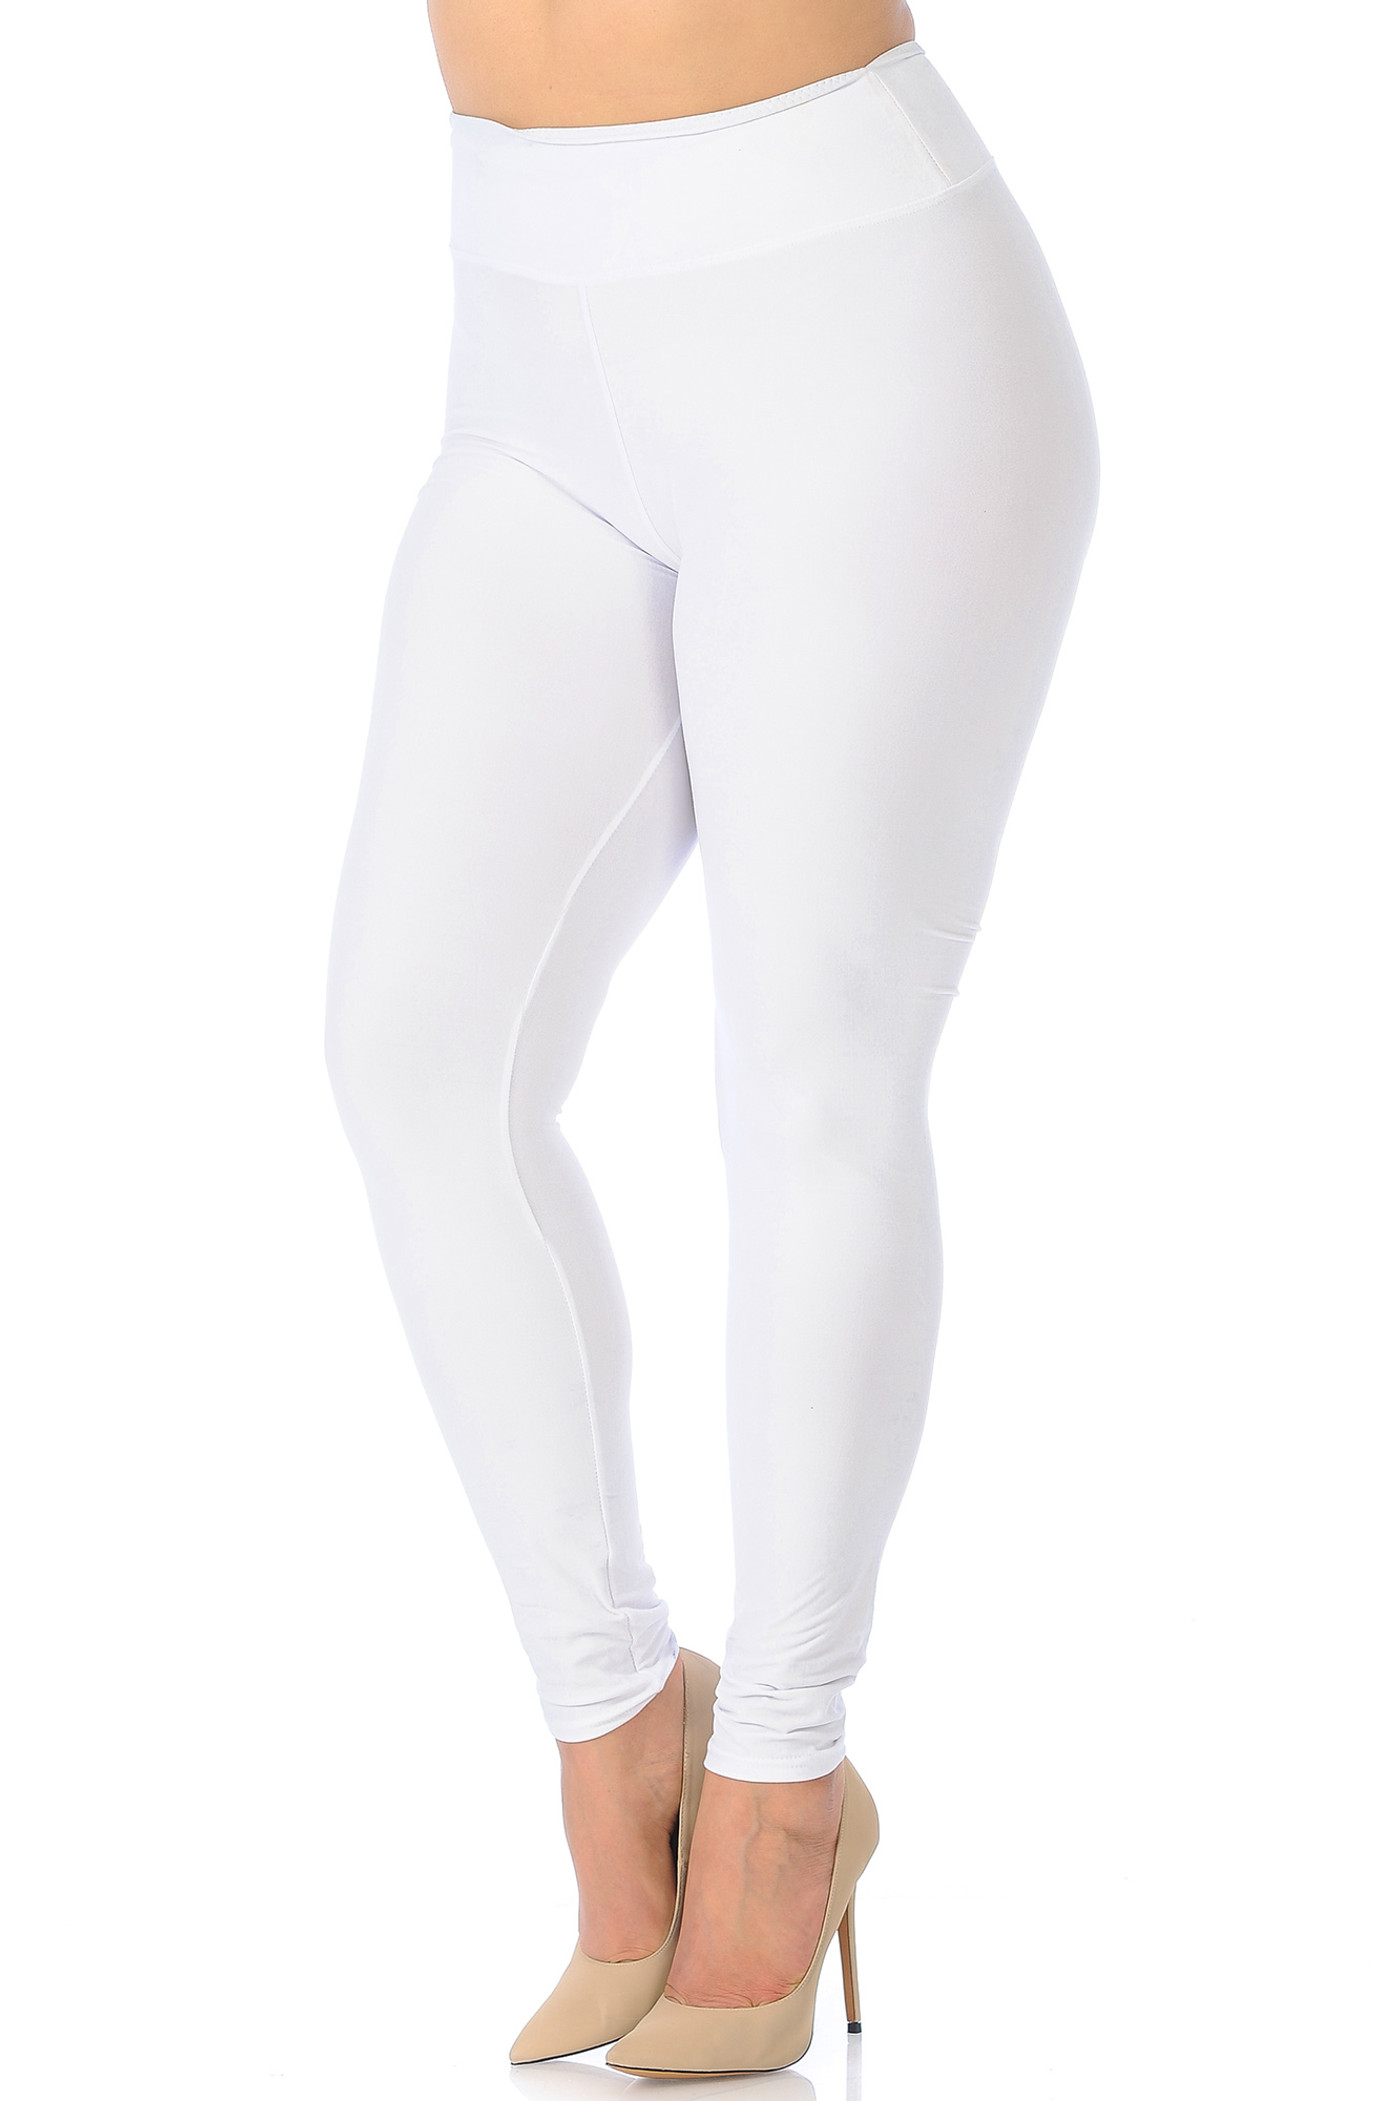 Buttery Soft Basic Solid Leggings - Plus Size - EEVEE - 3 Inch